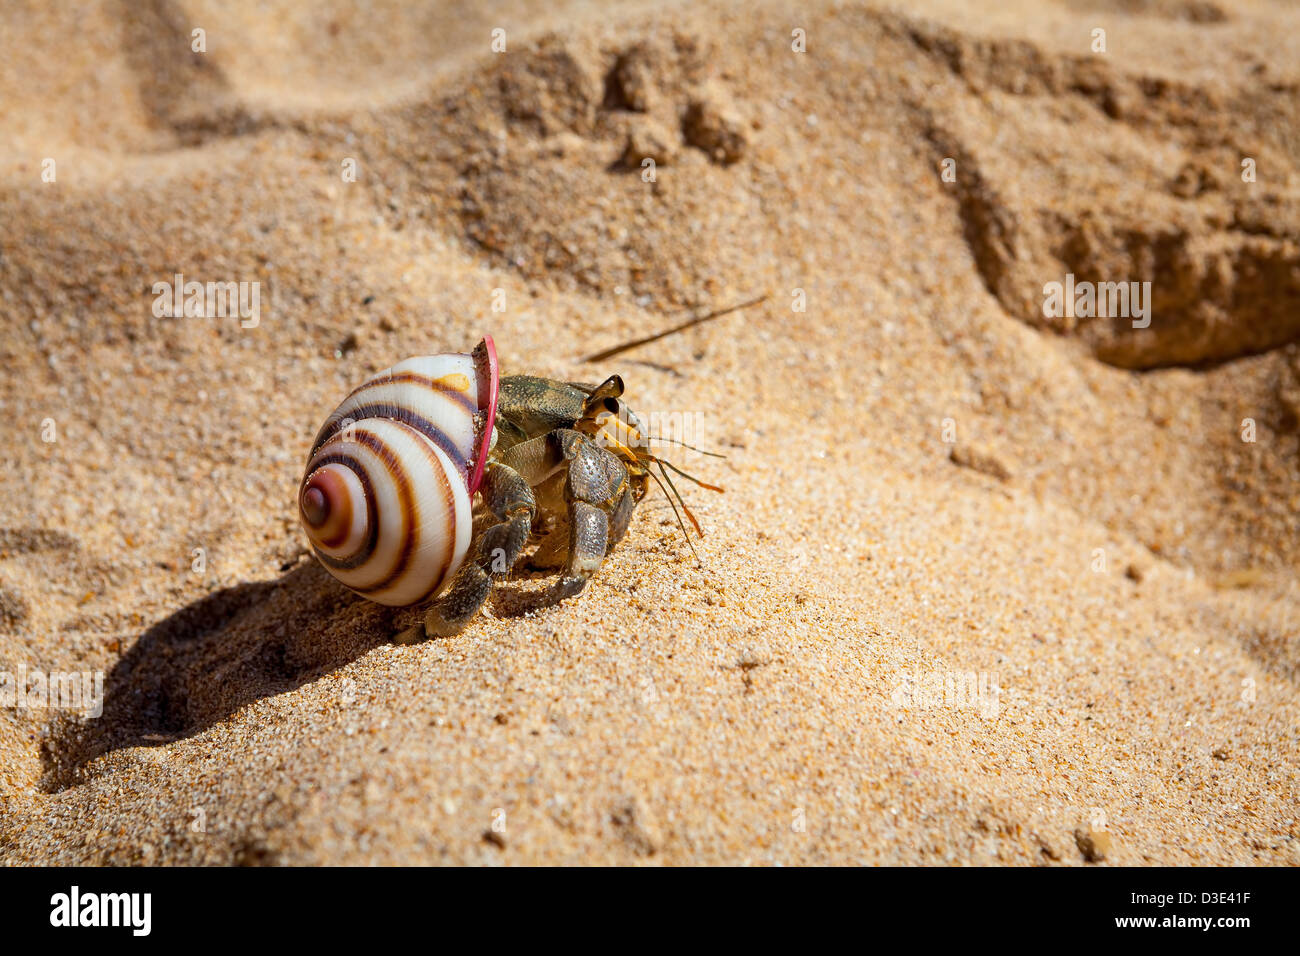 Hermit Crab on Sand in Mirissa, Sri Lanka - Stock Image